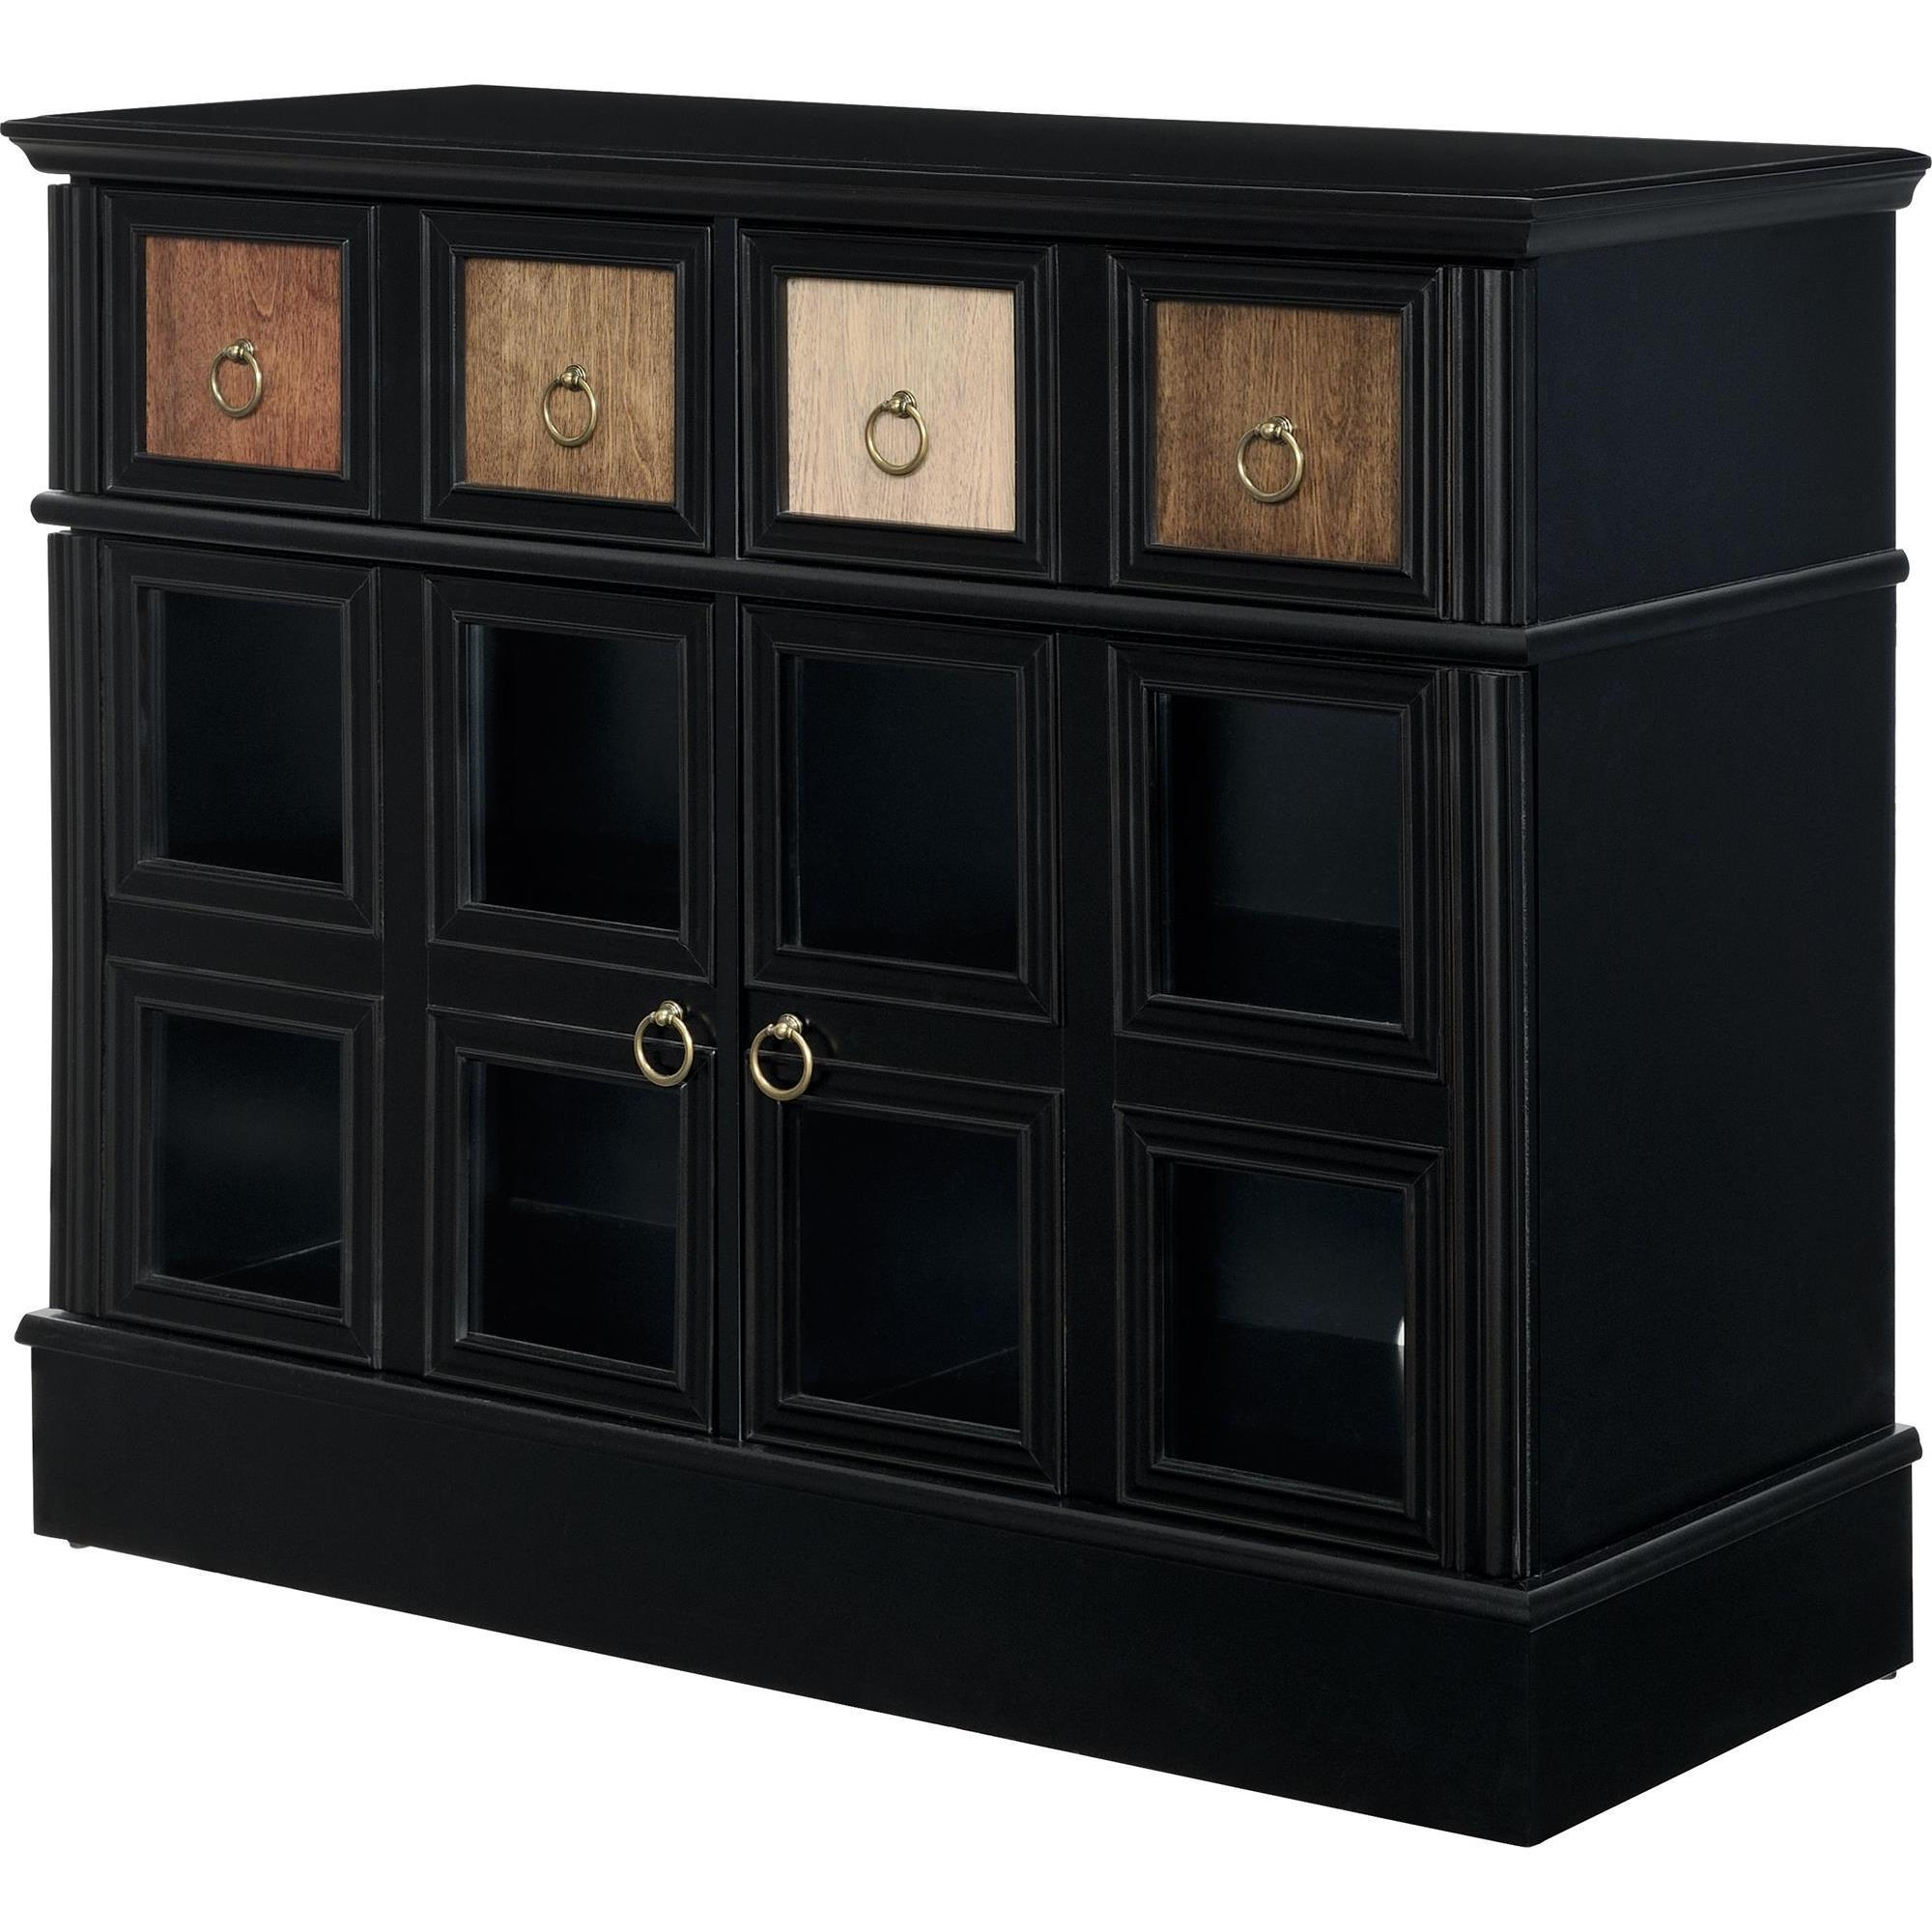 Shop Avenue Greene Wakefield Apothecary 42 Inch Black Tv Console Intended For Wakefield 97 Inch Tv Stands (View 20 of 20)